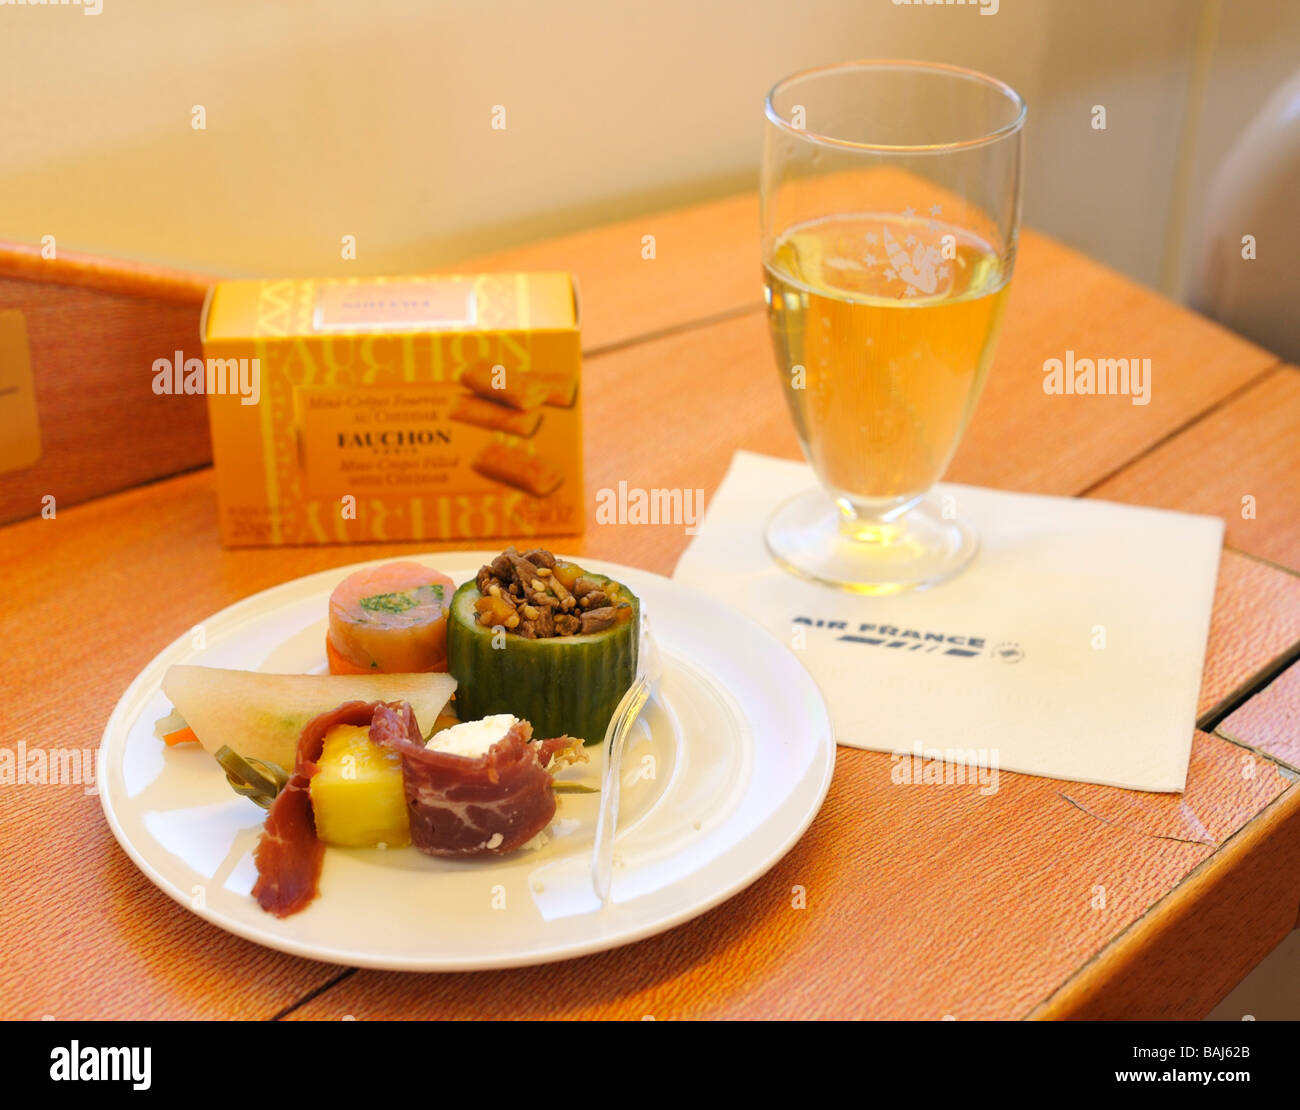 First Class Appetizers and Champagne, Air France La Premiere (First Class) - Stock Image